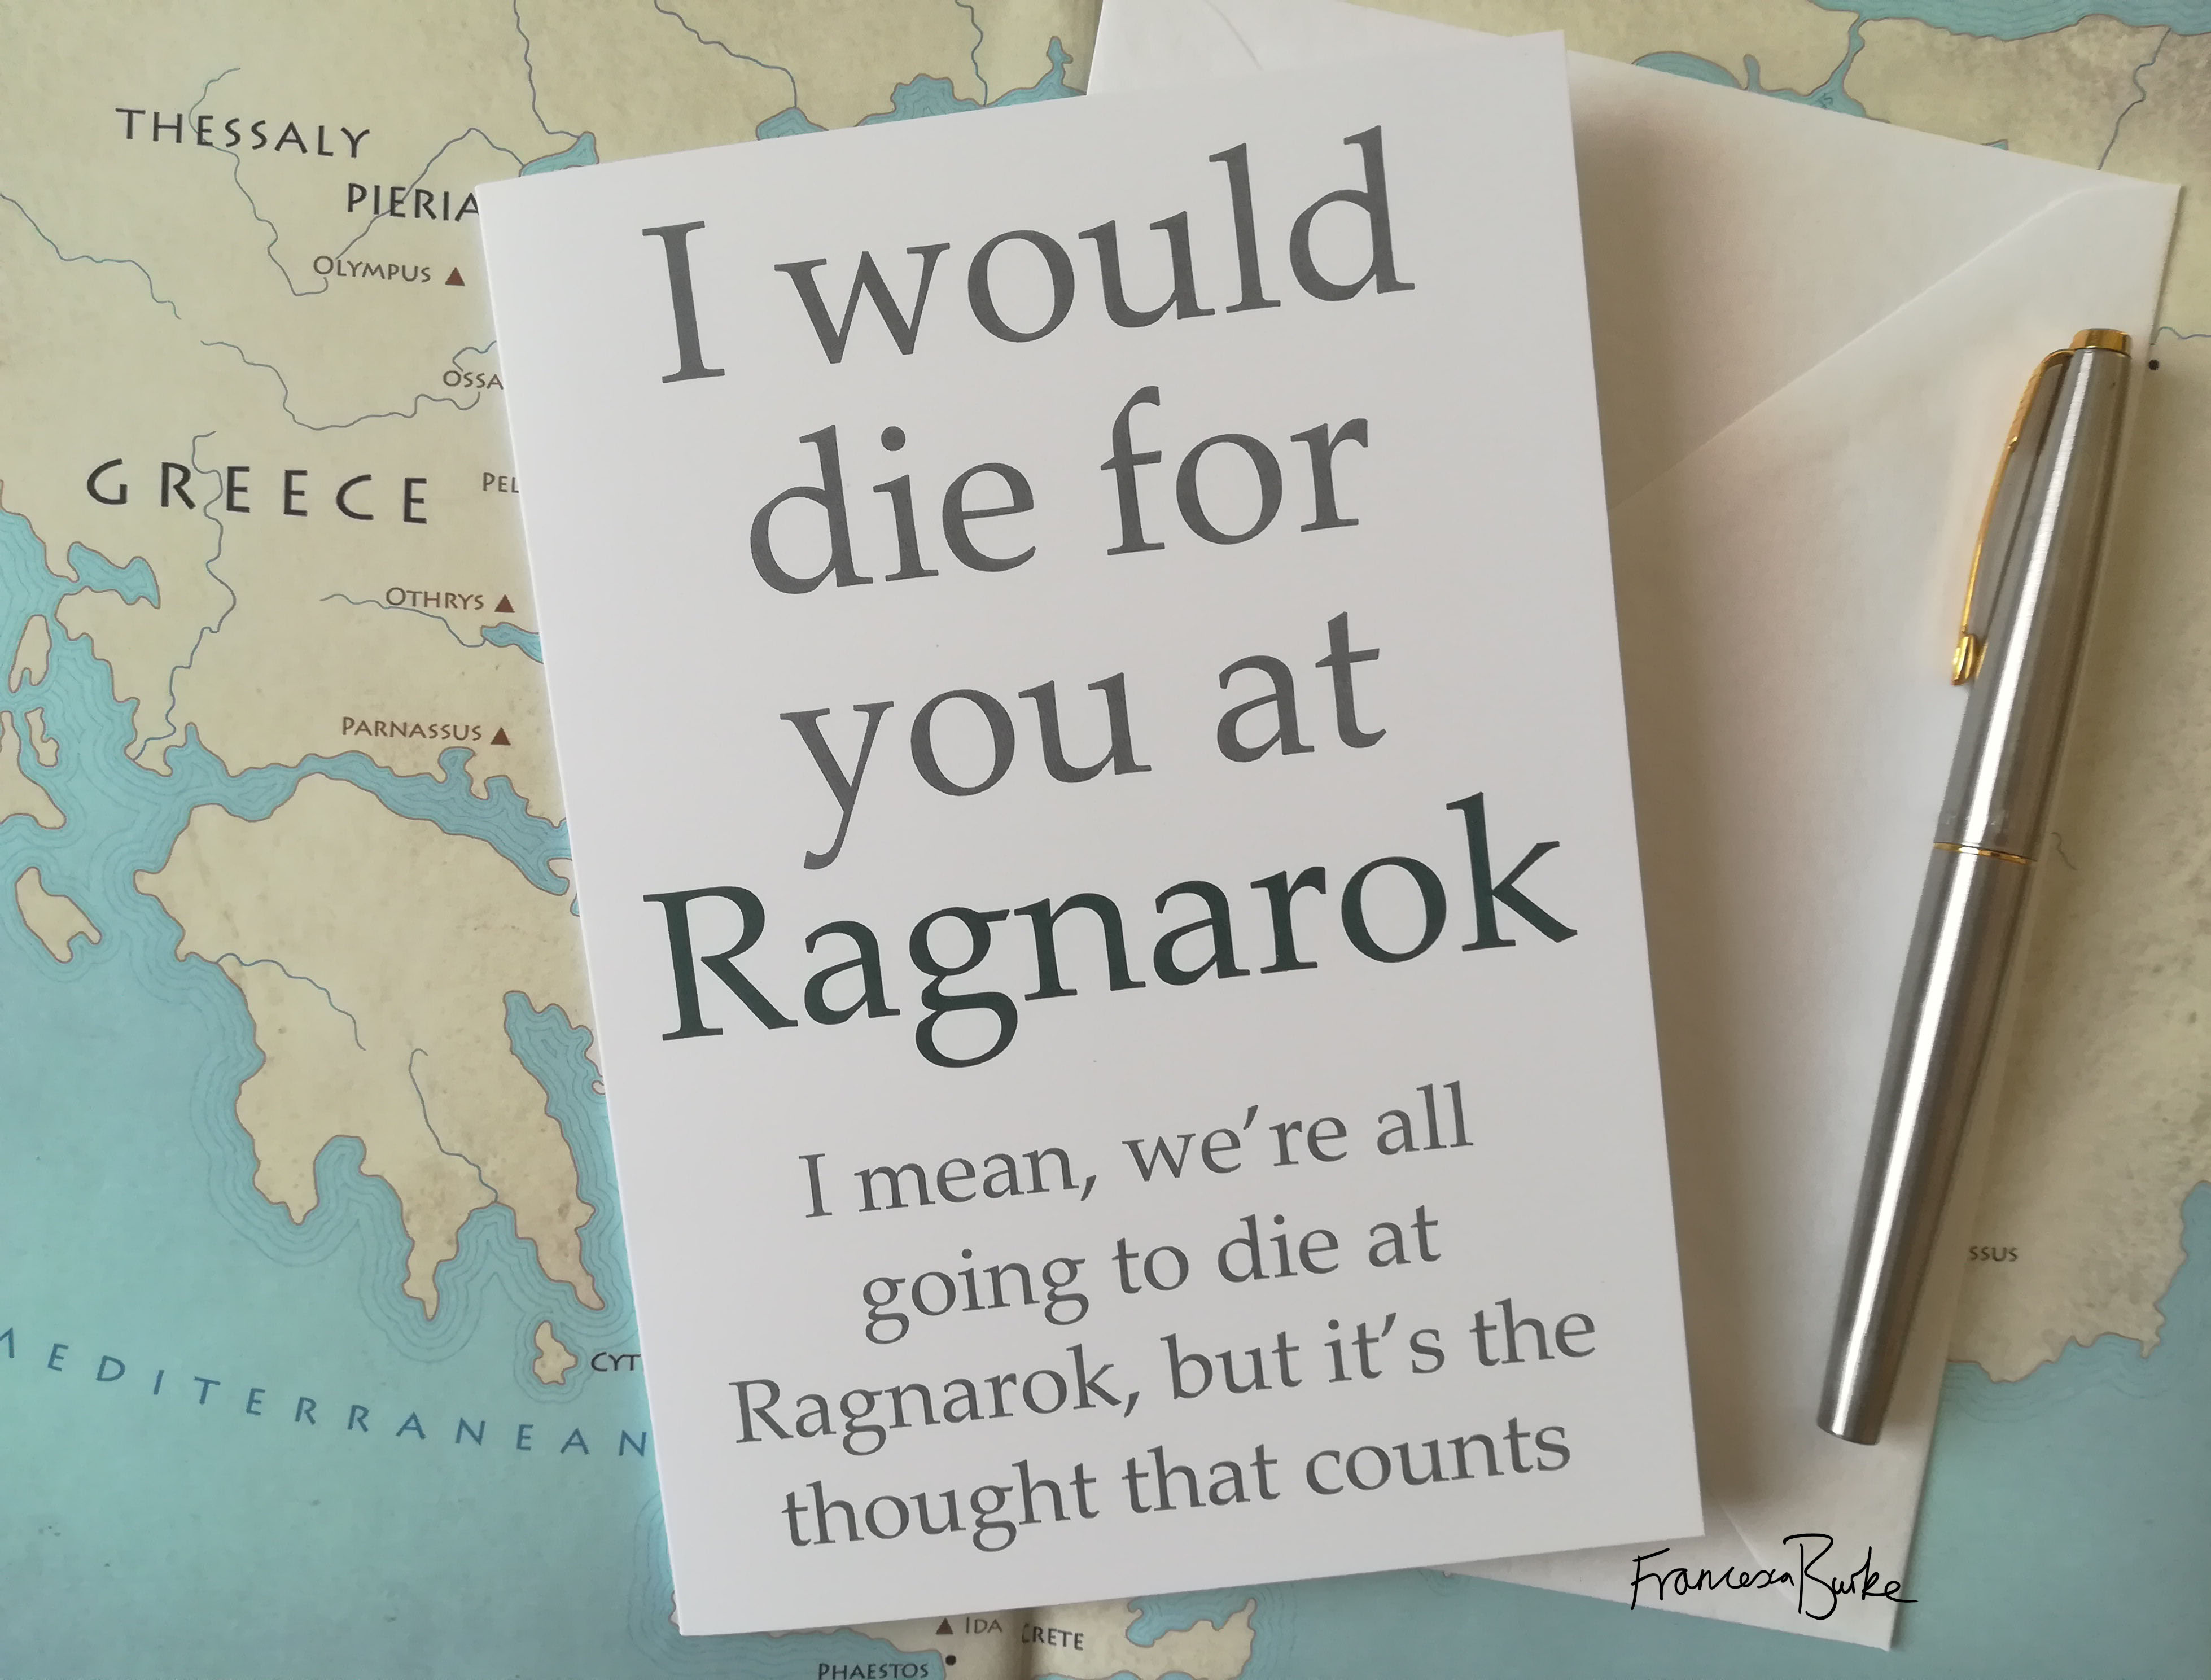 card reading 'I would die for you at Ragnarok I mean, we're all going to die at Ragnarok, but it's the thought that counts'